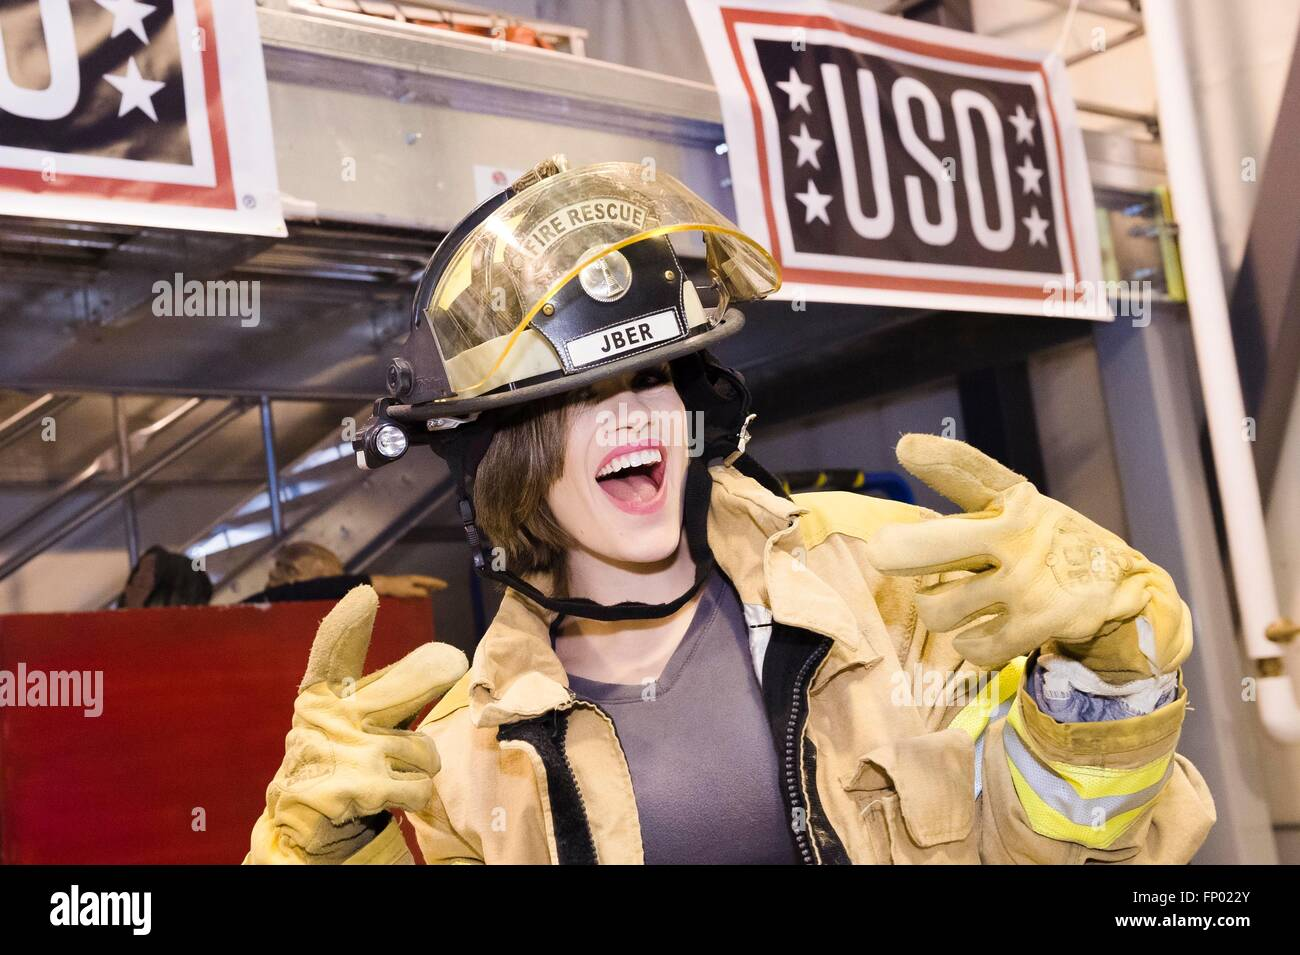 Betty Cantrell, Miss America 2016, tries on a firefighter uniform during a visit to service members as part of the - Stock Image